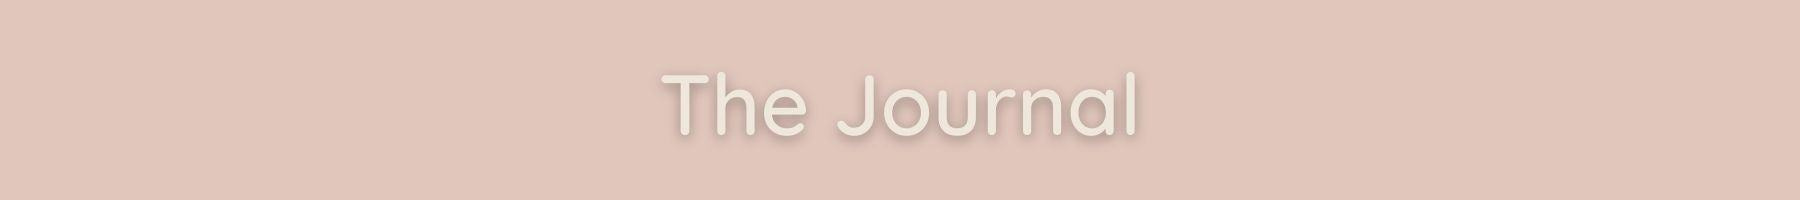 THE JOURNAL DINKI HUMAN BLOG